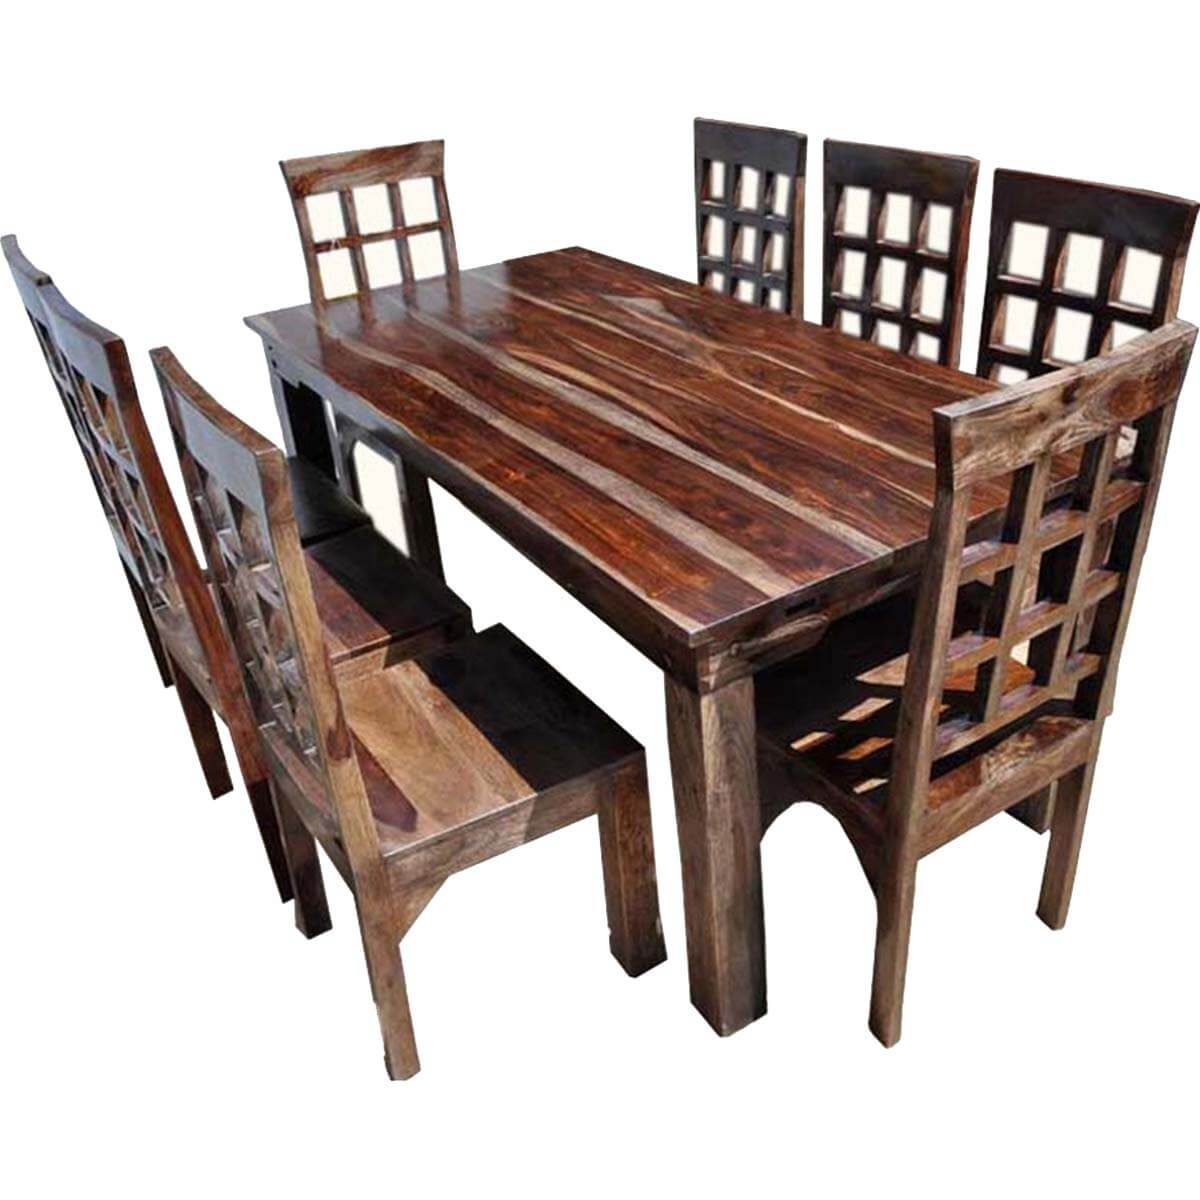 Wooden Dining Table Set ~ Farmhouse solid wood dining table chairs sideboard set